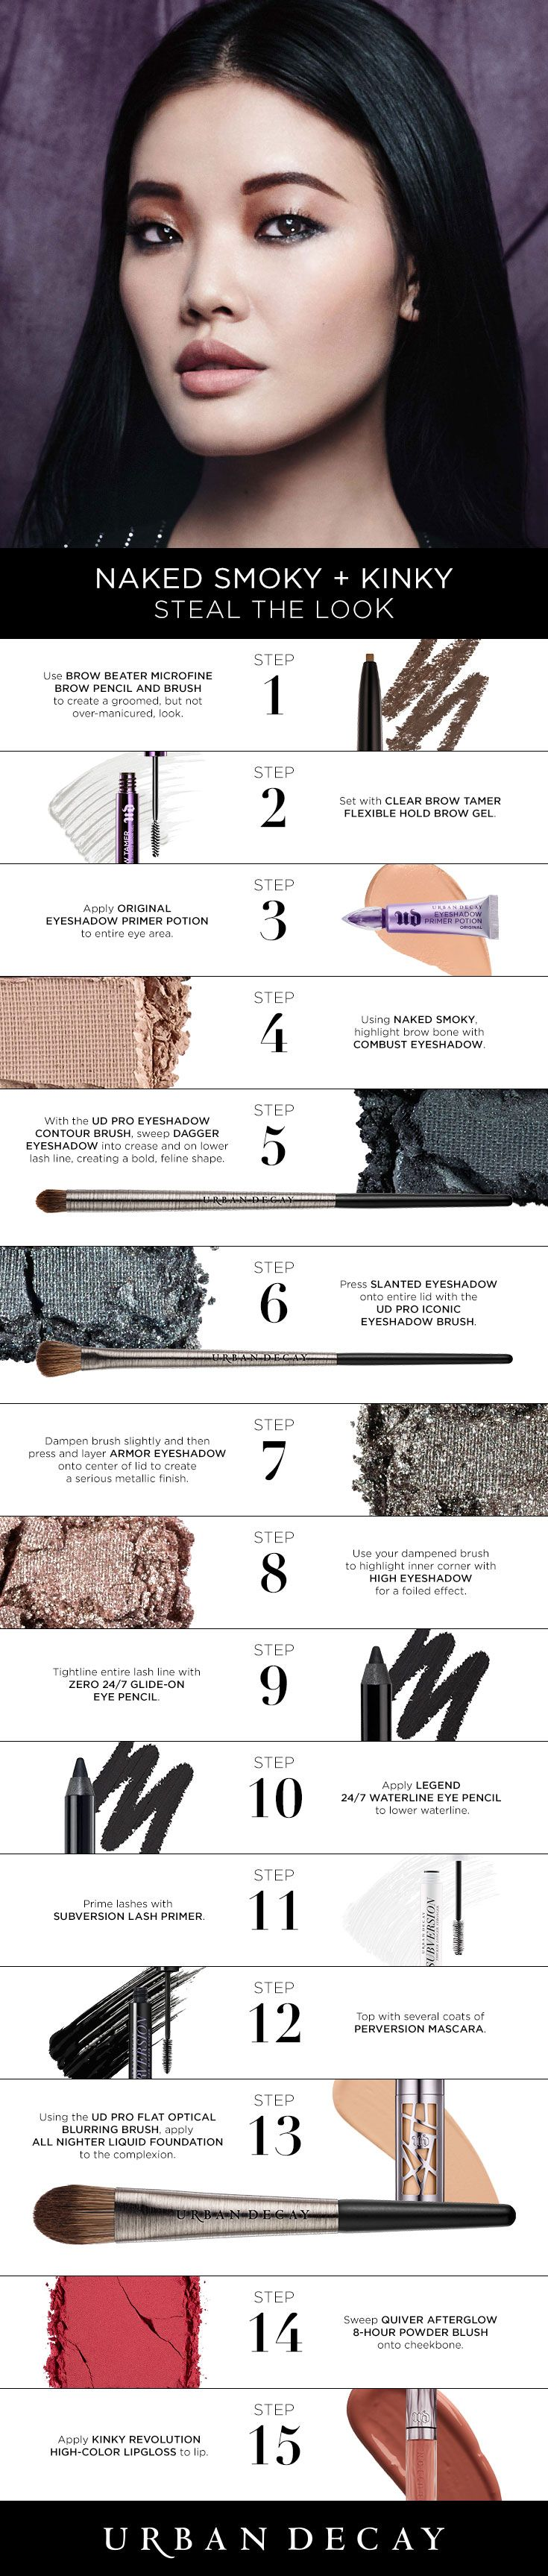 Looking to pull an all nighter? Here are 15 steps on how to get the perfect Naked Smoky look that's sure to last you all day and night! #UDAllNighter